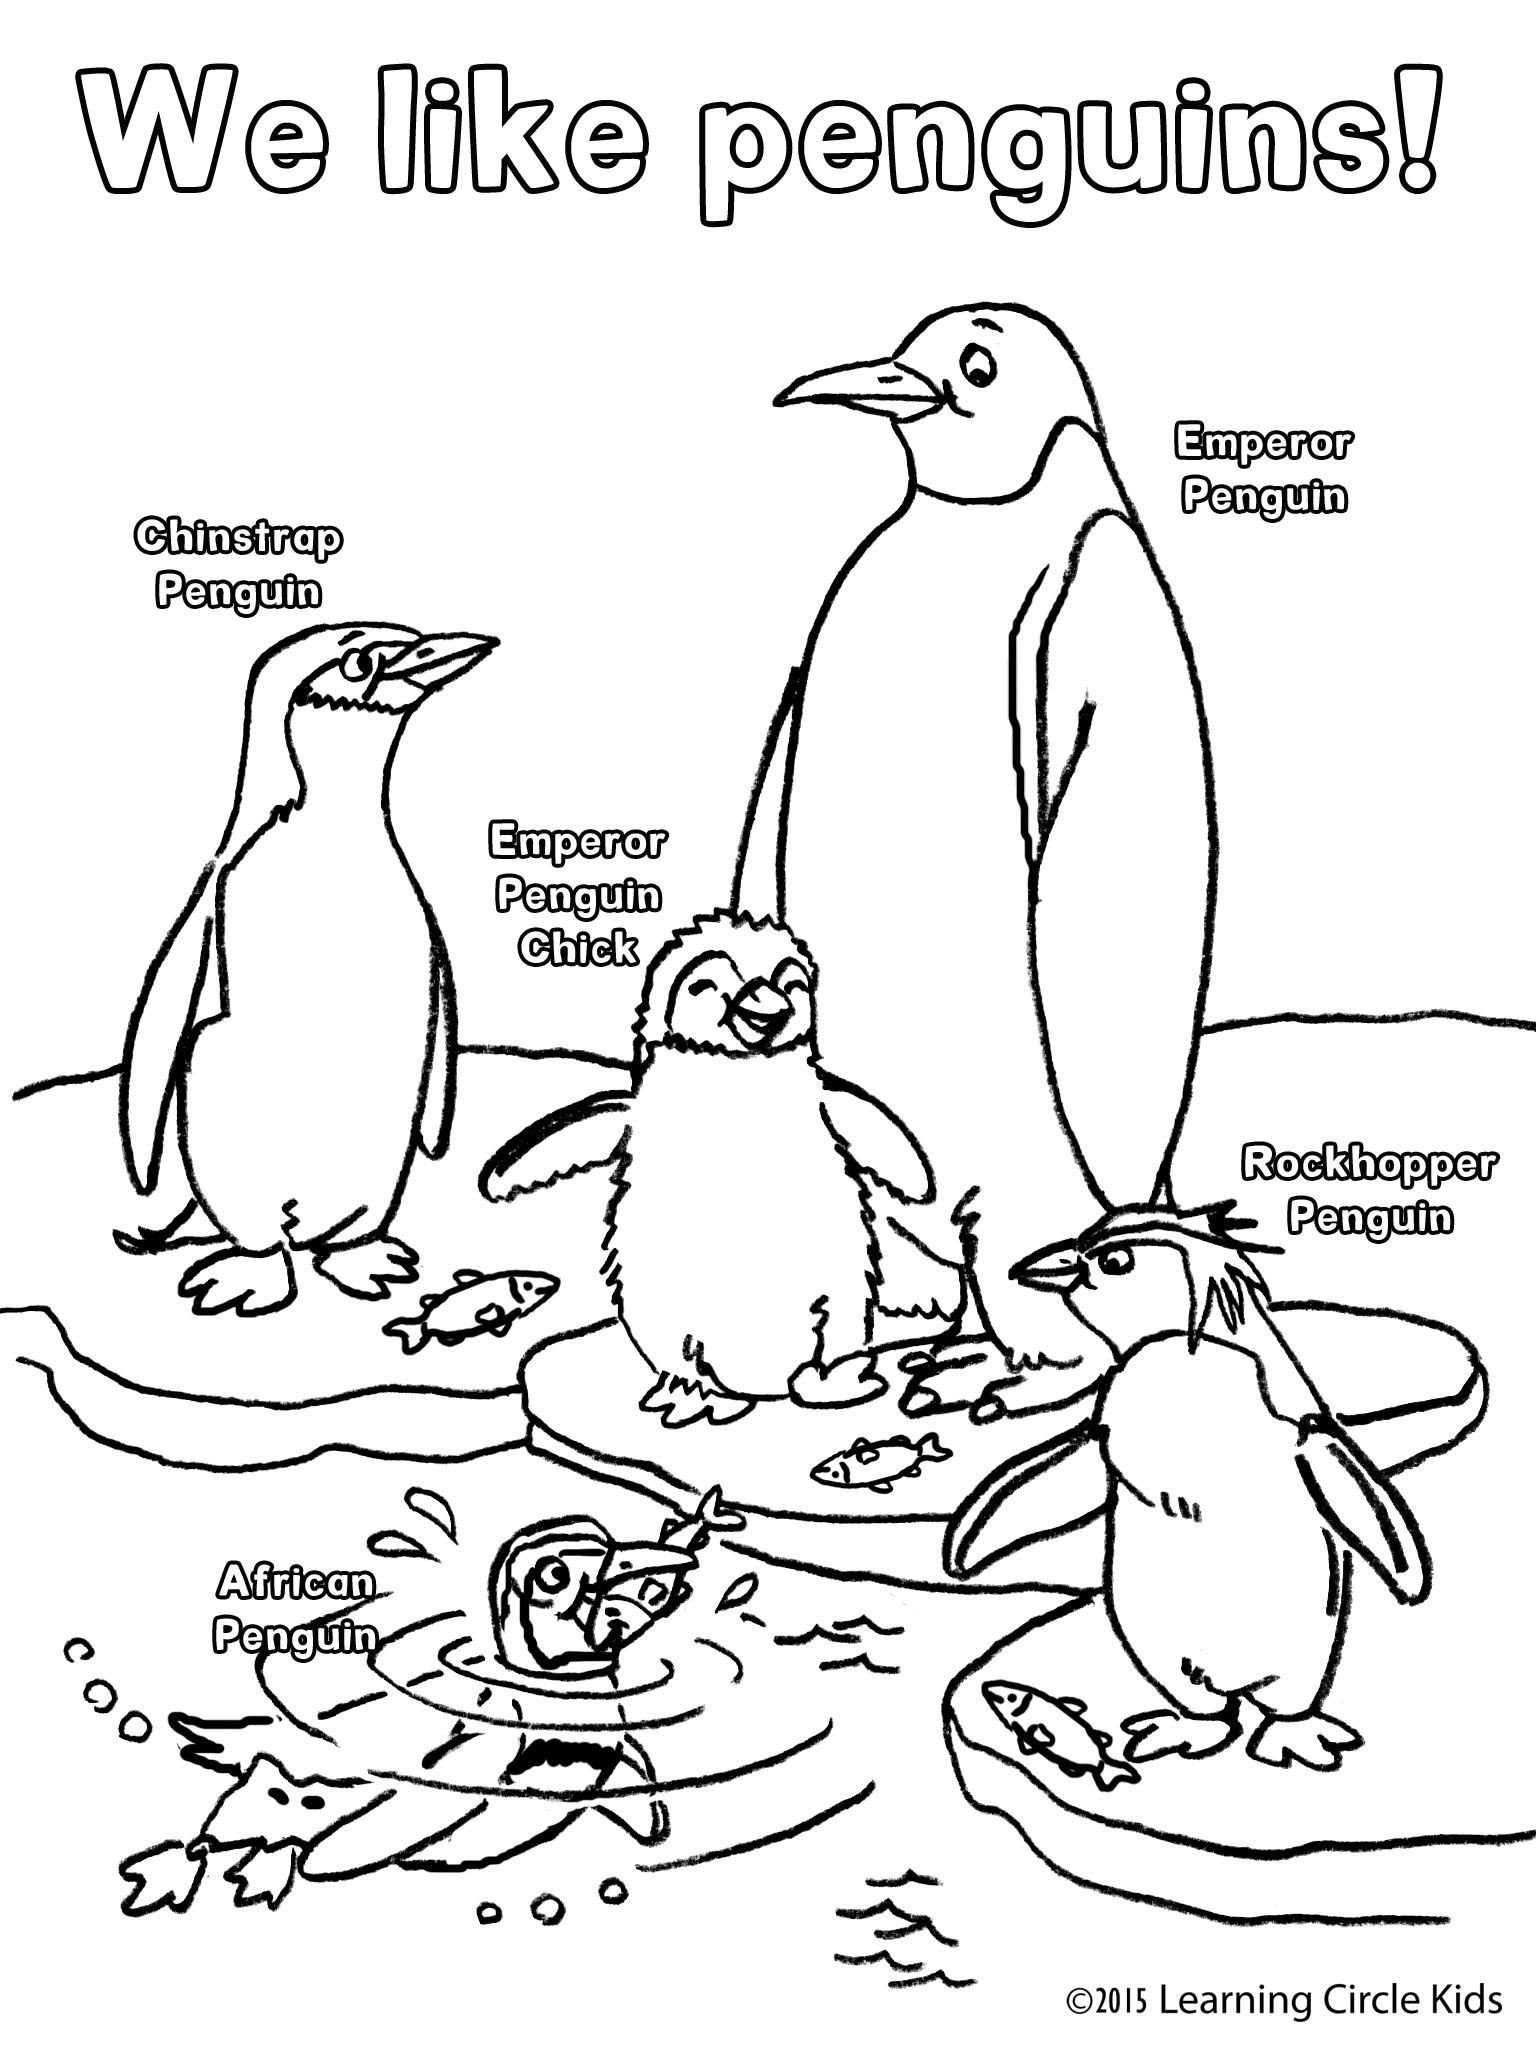 Penguin Worksheets for Kindergarten Free Penguin Coloring From Http Readerbee High School Anger